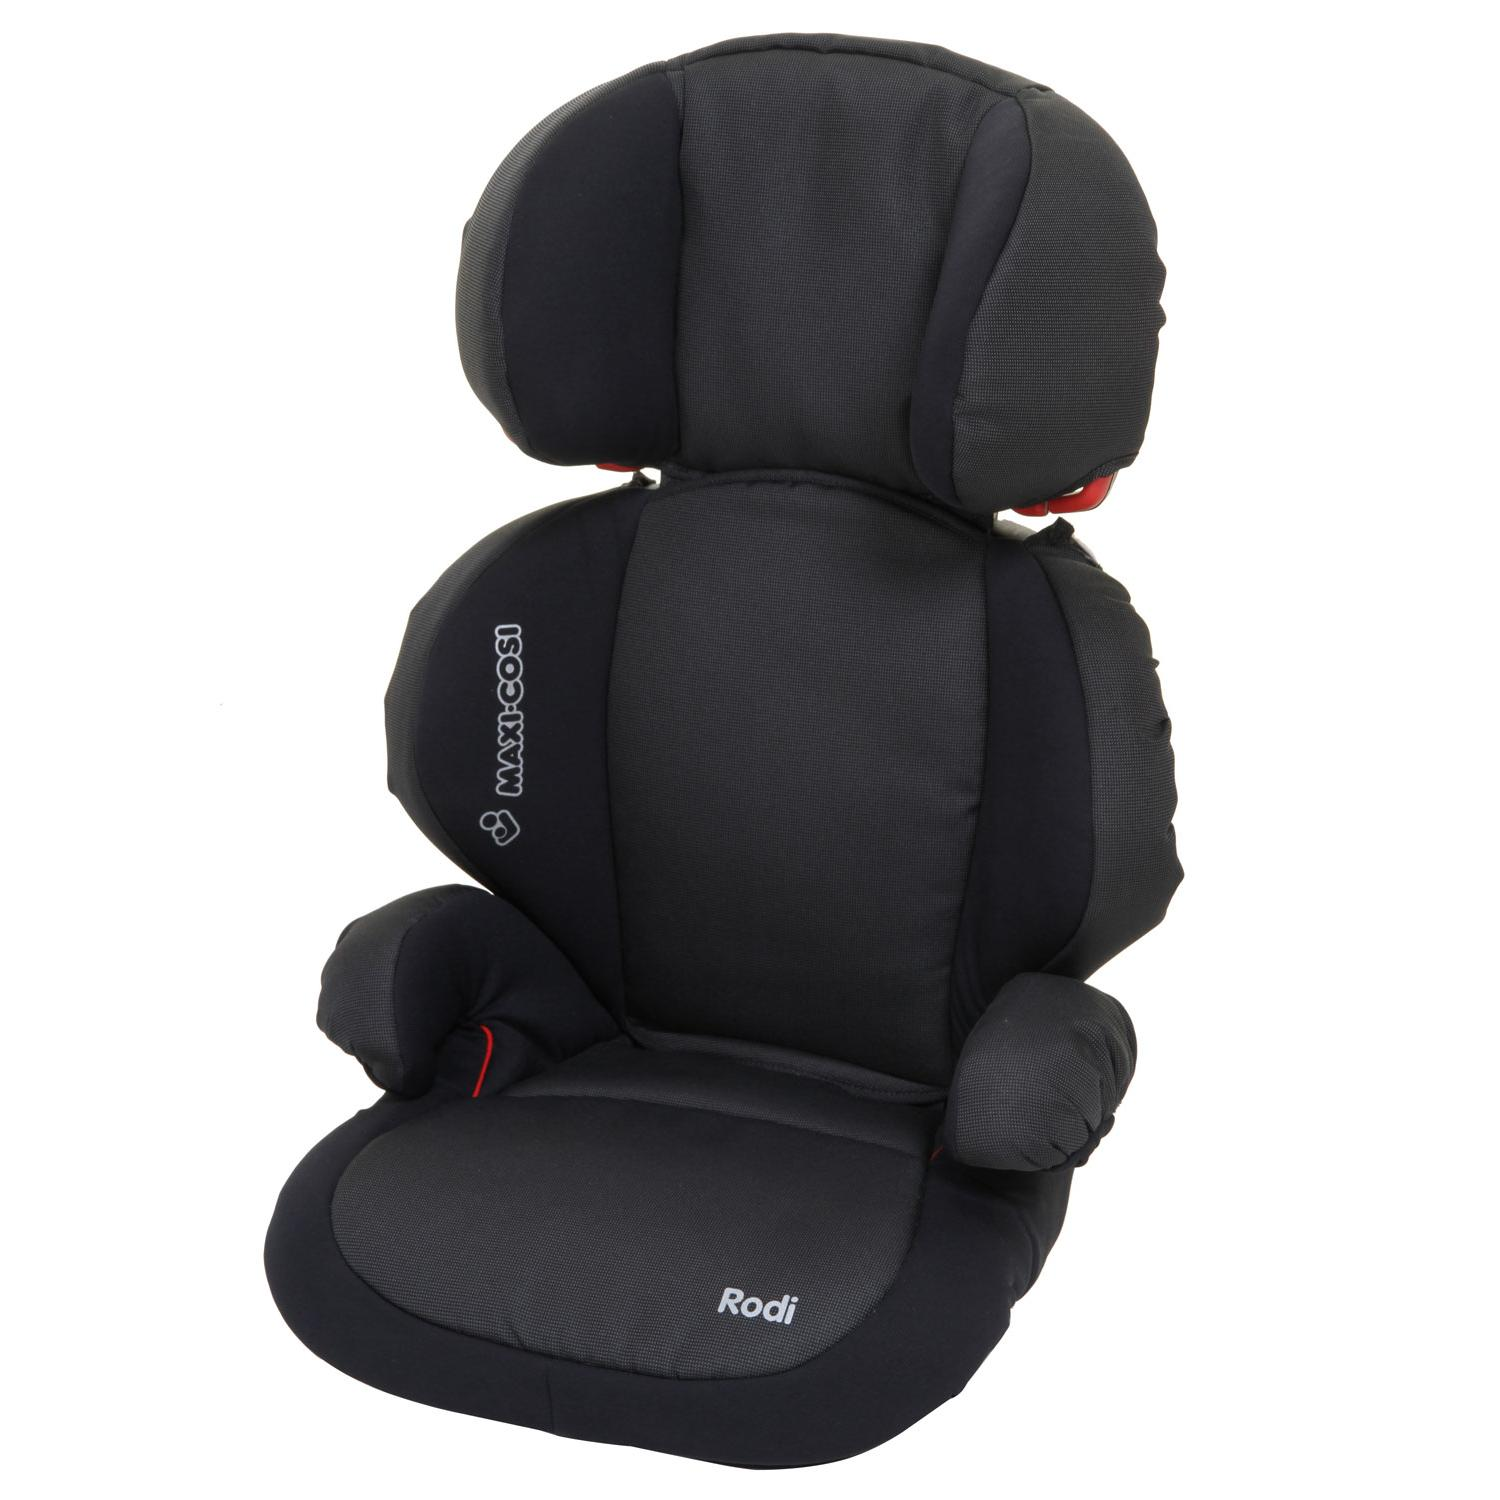 maxi cosi rodi sps car seat best for baby. Black Bedroom Furniture Sets. Home Design Ideas